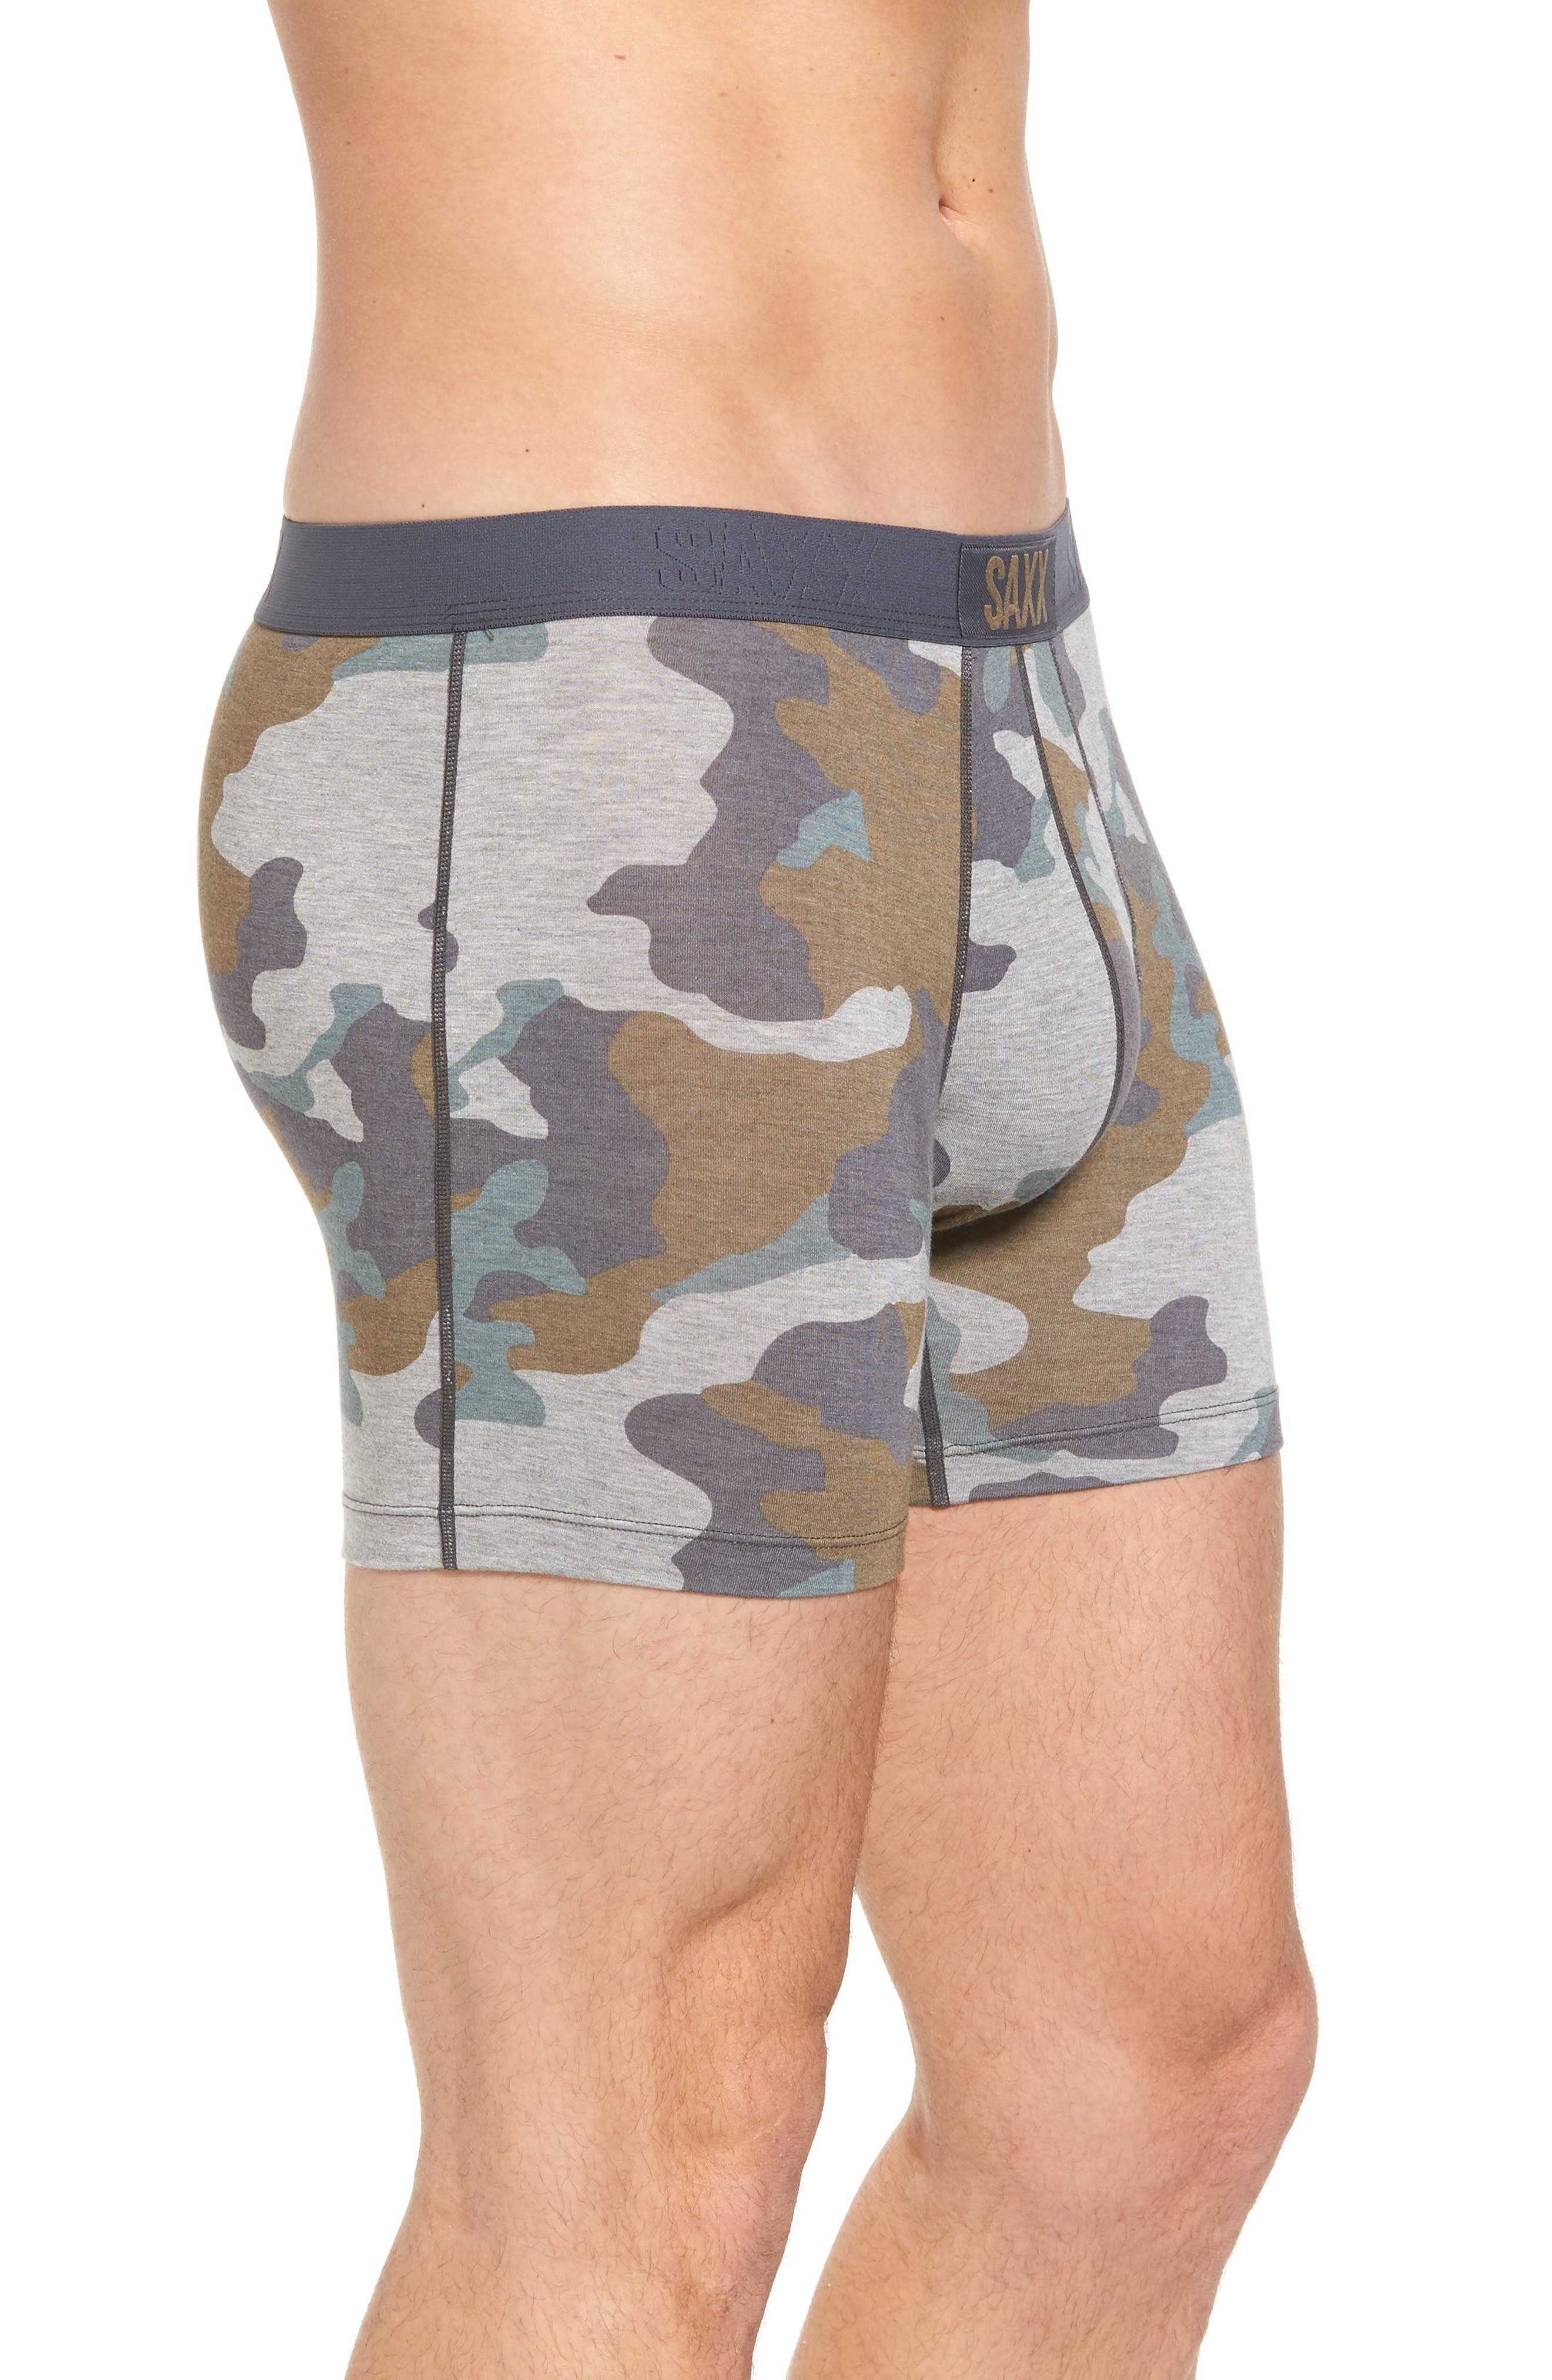 Vibe Boxer Briefs,                             Alternate thumbnail 3, color,                             Grey Supersize Camo